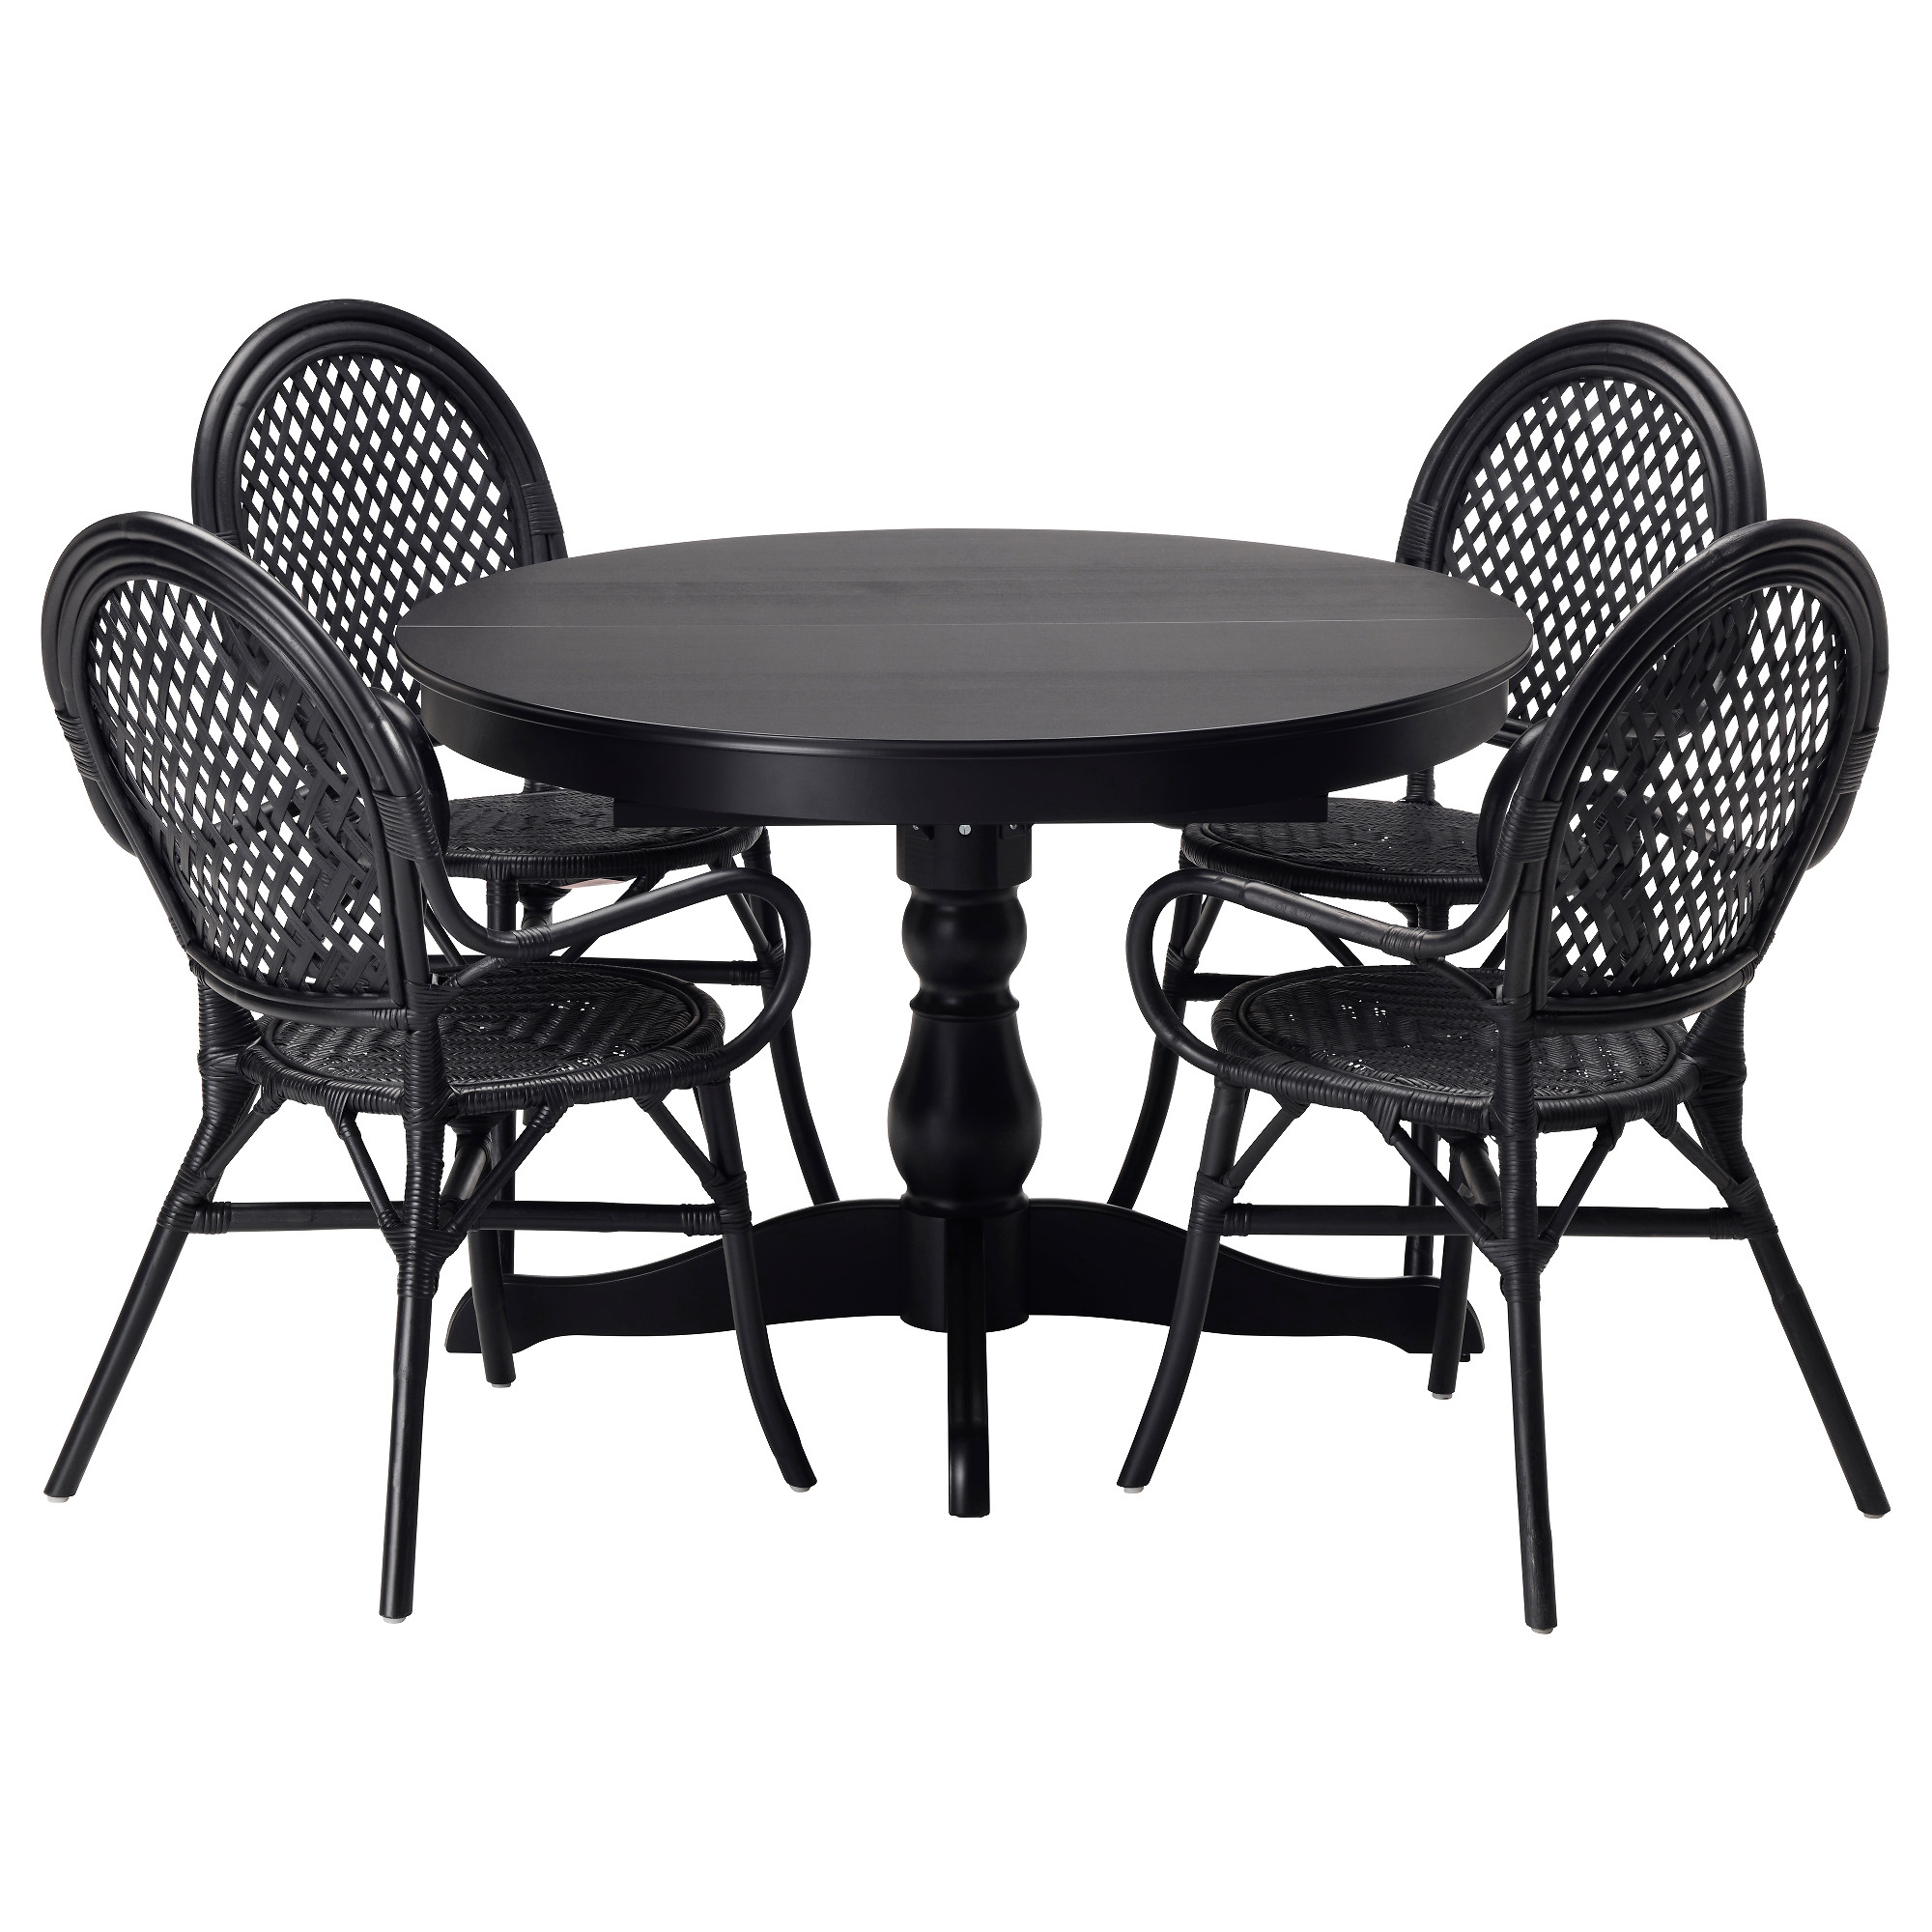 Black and white dining room sets - Ingatorp Lmsta Table And 4 Chairs Black Rattan Black Length 61